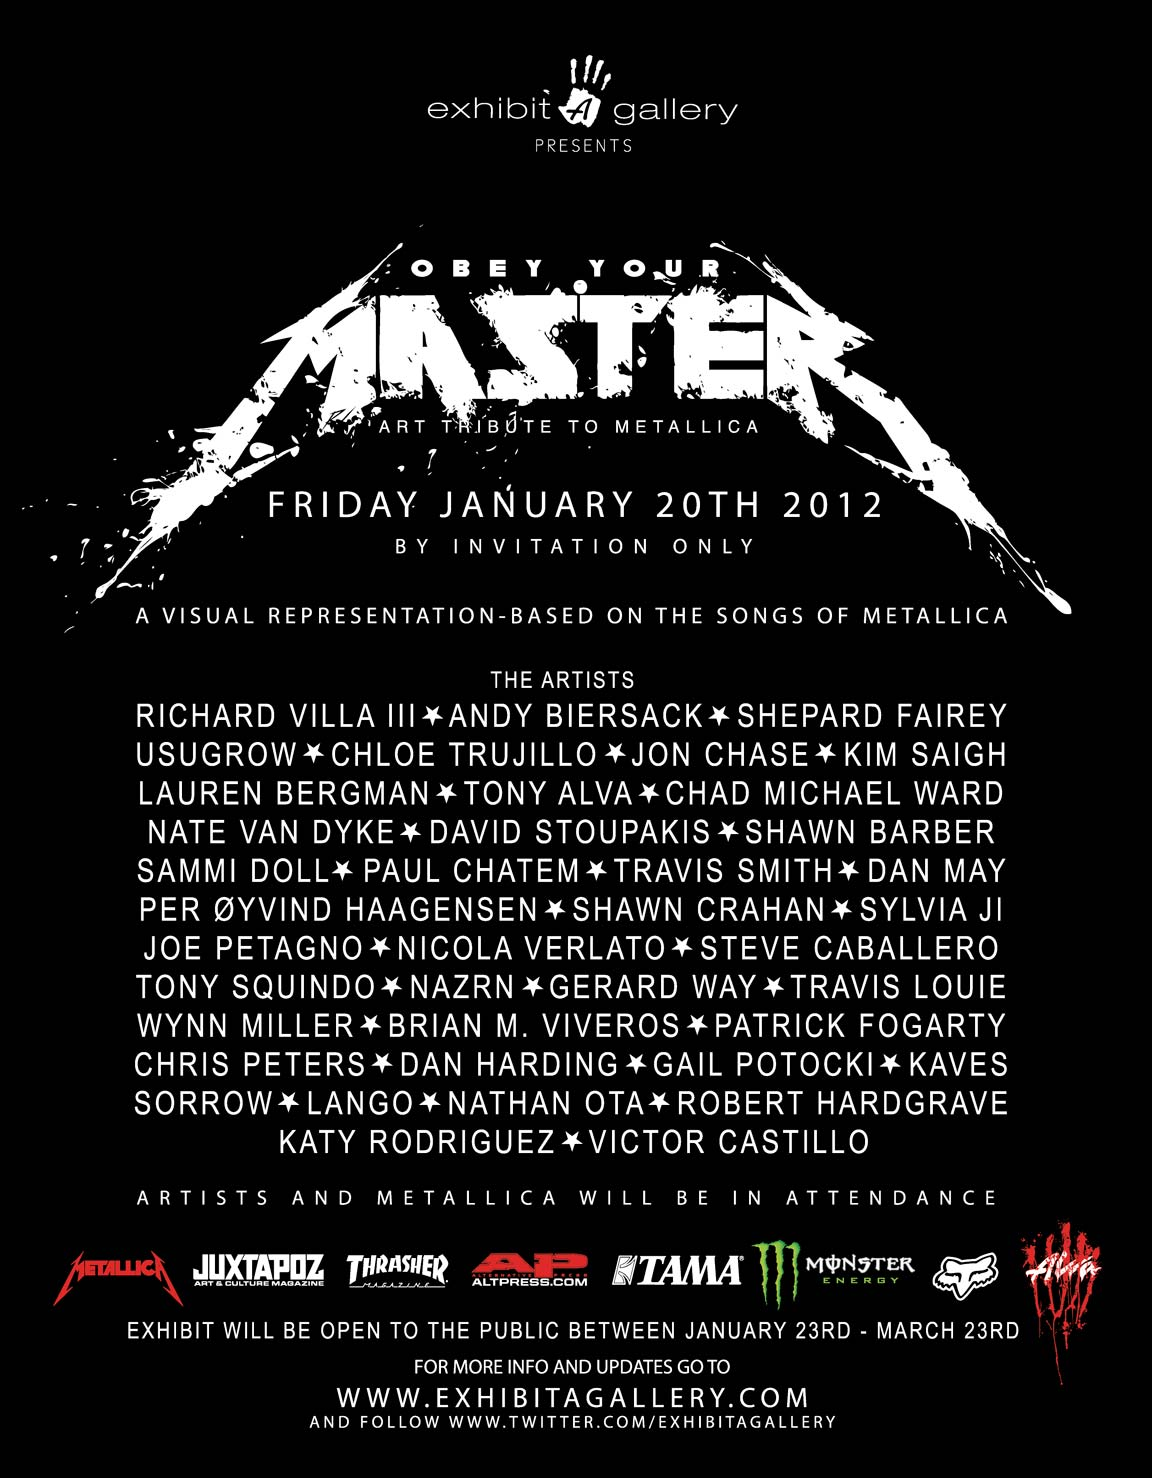 obey-your-master-artists1.jpg